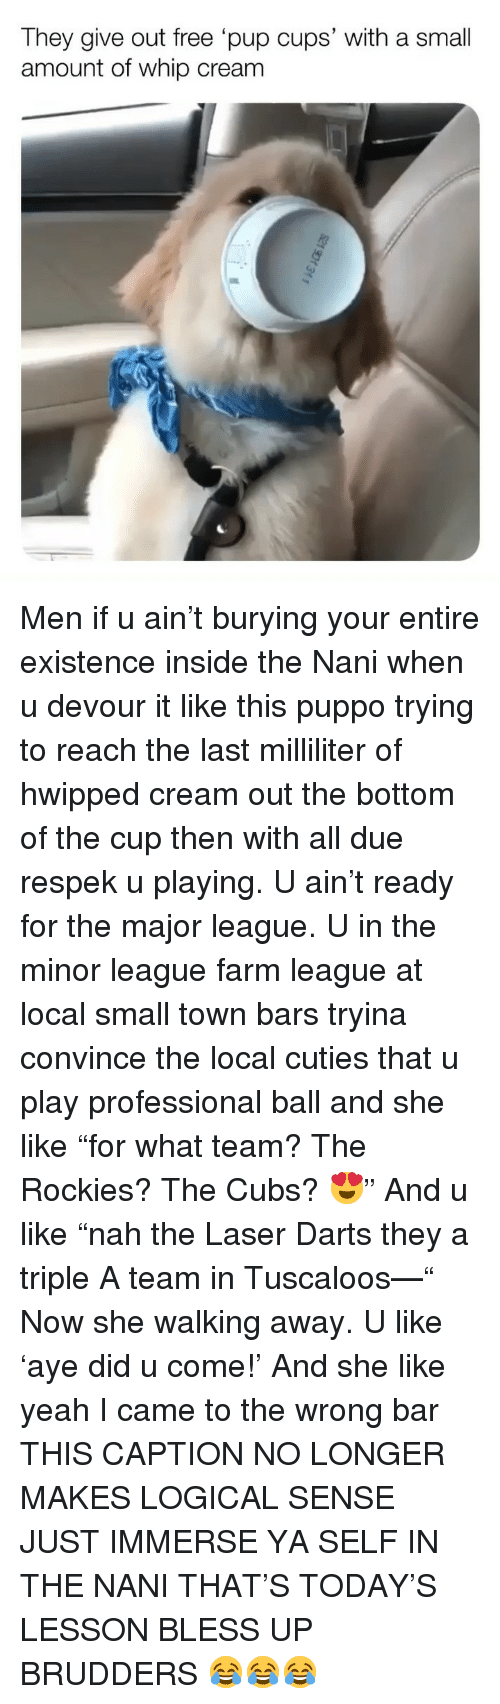 "Rockies: They give out free pup cups' with a small  amount of whip cream Men if u ain't burying your entire existence inside the Nani when u devour it like this puppo trying to reach the last milliliter of hwipped cream out the bottom of the cup then with all due respek u playing. U ain't ready for the major league. U in the minor league farm league at local small town bars tryina convince the local cuties that u play professional ball and she like ""for what team? The Rockies? The Cubs? 😍"" And u like ""nah the Laser Darts they a triple A team in Tuscaloos—"" Now she walking away. U like 'aye did u come!' And she like yeah I came to the wrong bar THIS CAPTION NO LONGER MAKES LOGICAL SENSE JUST IMMERSE YA SELF IN THE NANI THAT'S TODAY'S LESSON BLESS UP BRUDDERS 😂😂😂"